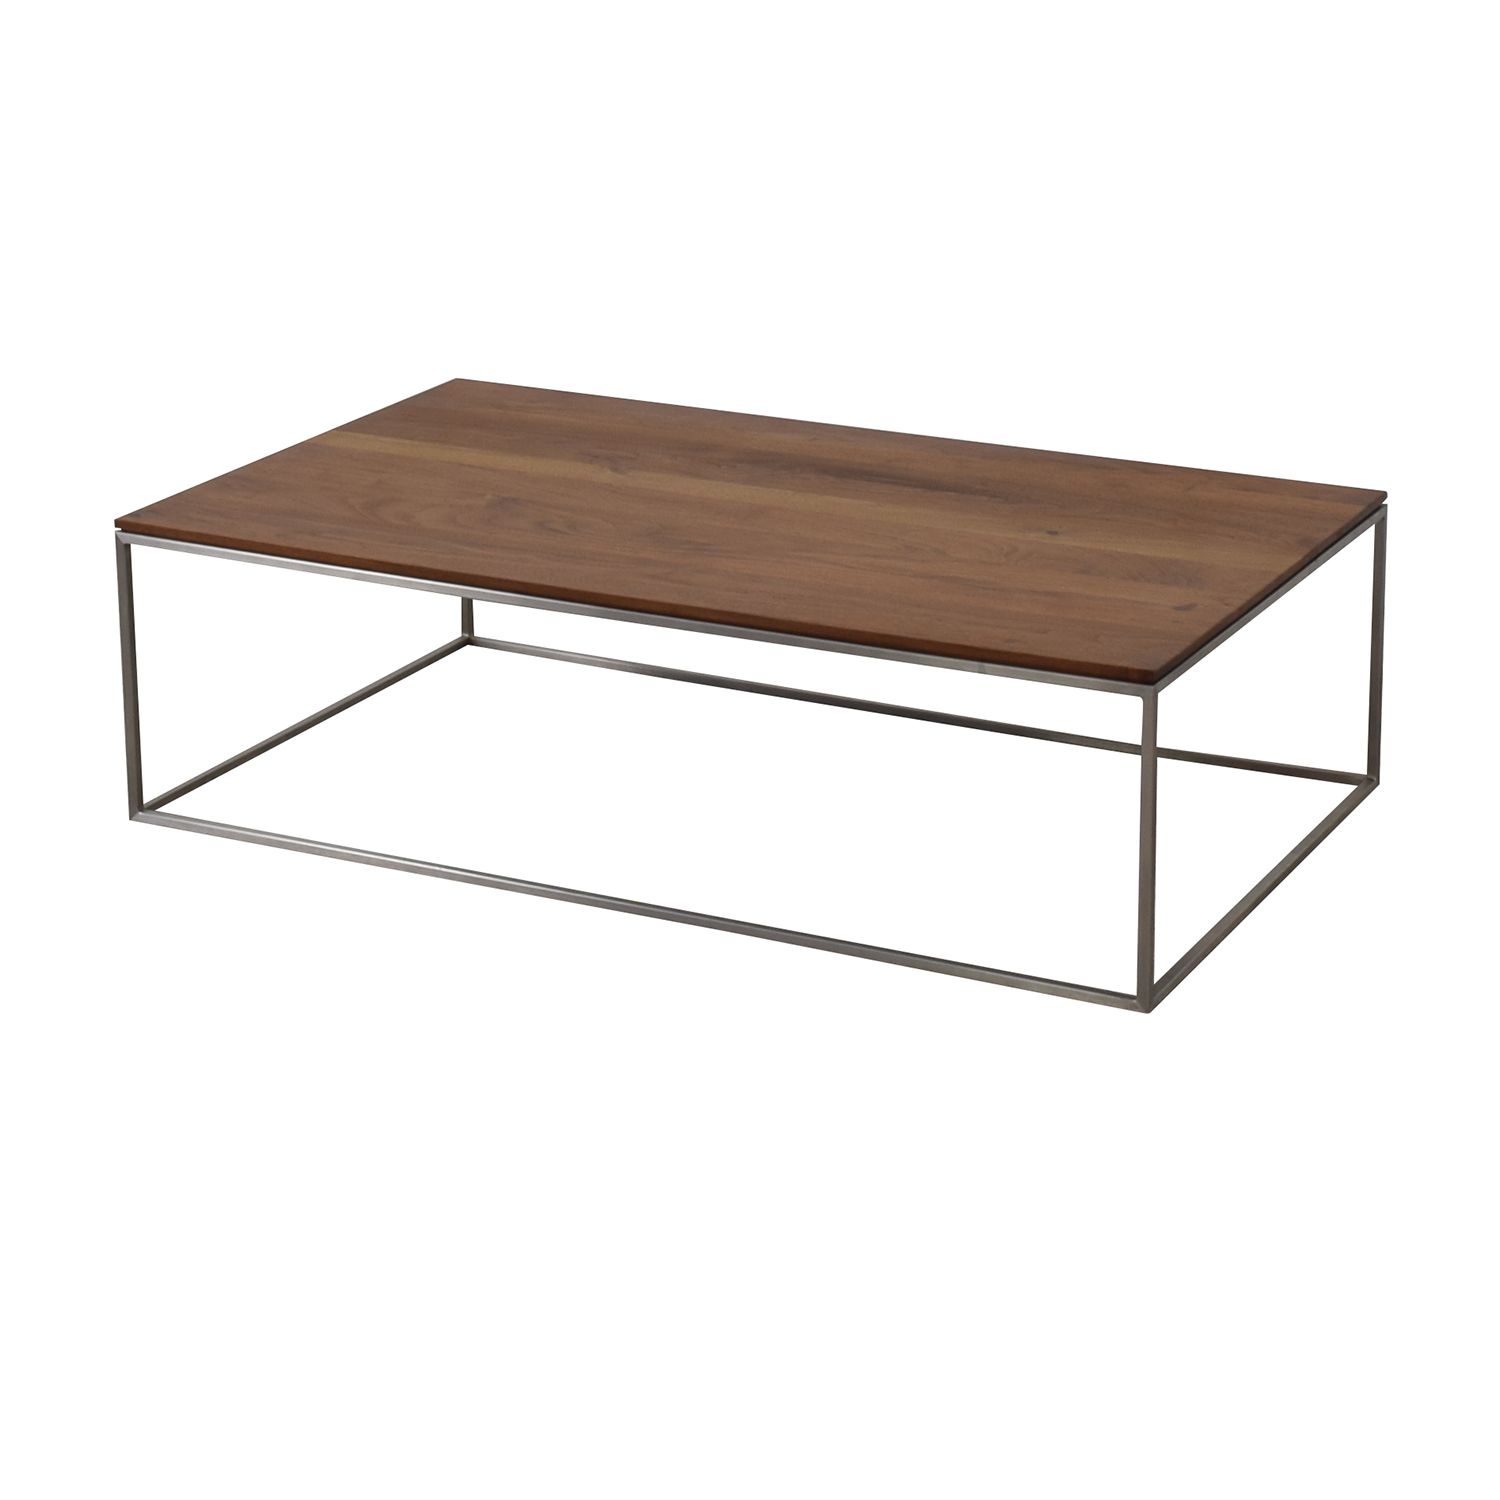 Crate & Barrel Crate & Barrel Frame Medium Coffee Table second hand